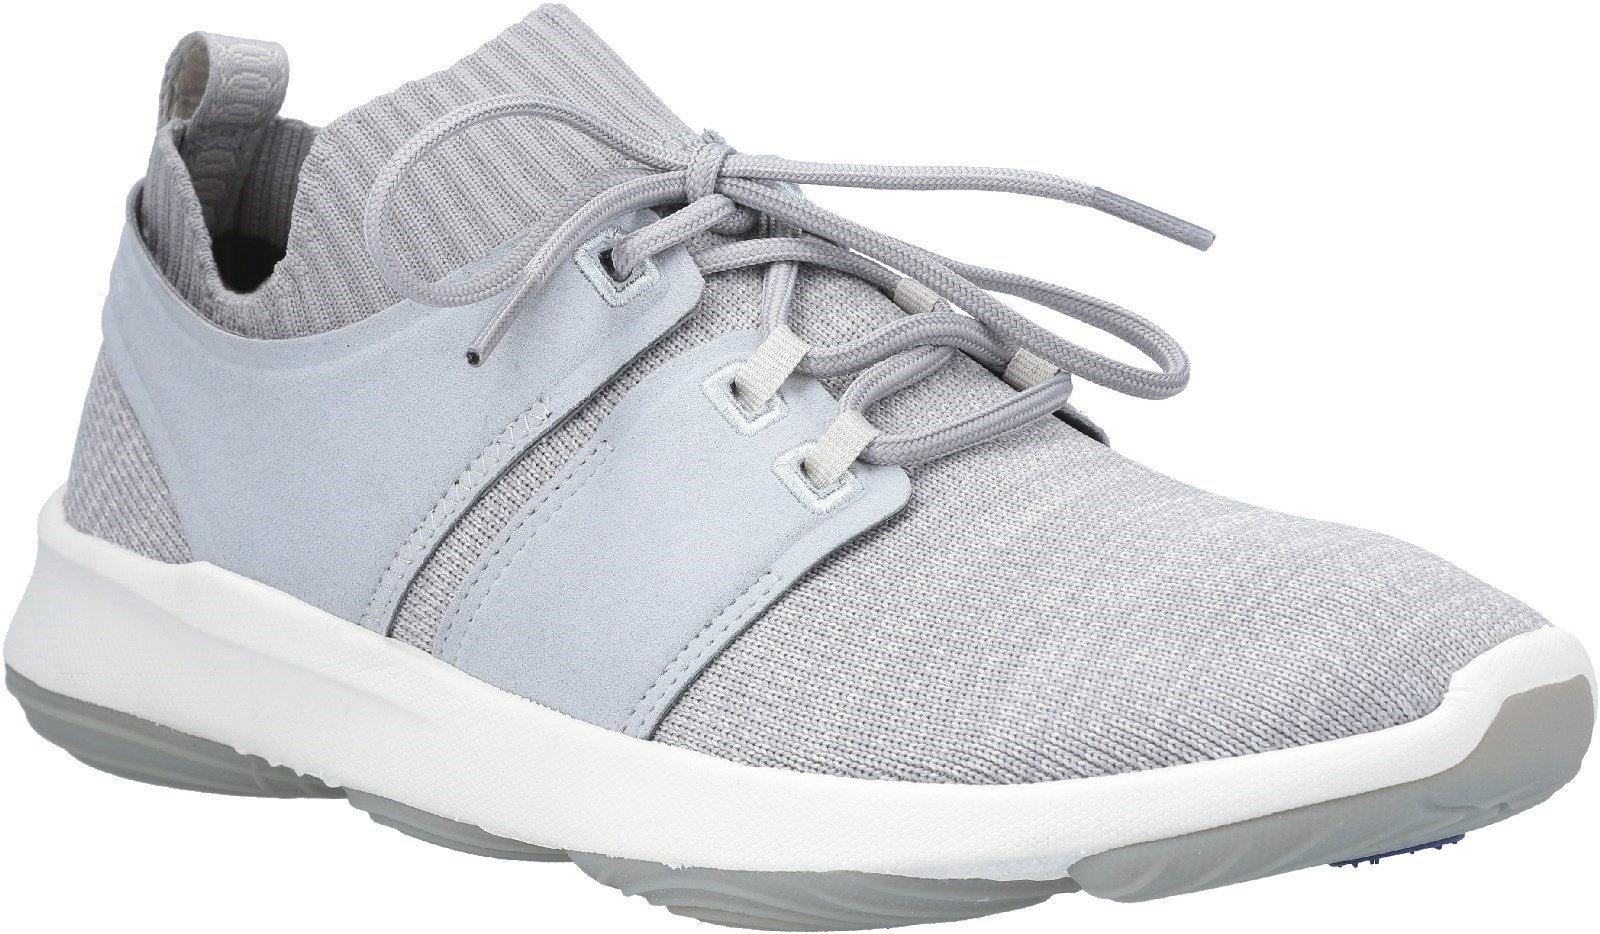 Hush Puppies Men's World BounceMax Lace Up Trainer Various Colours 28382 - Cool Grey Knit 6